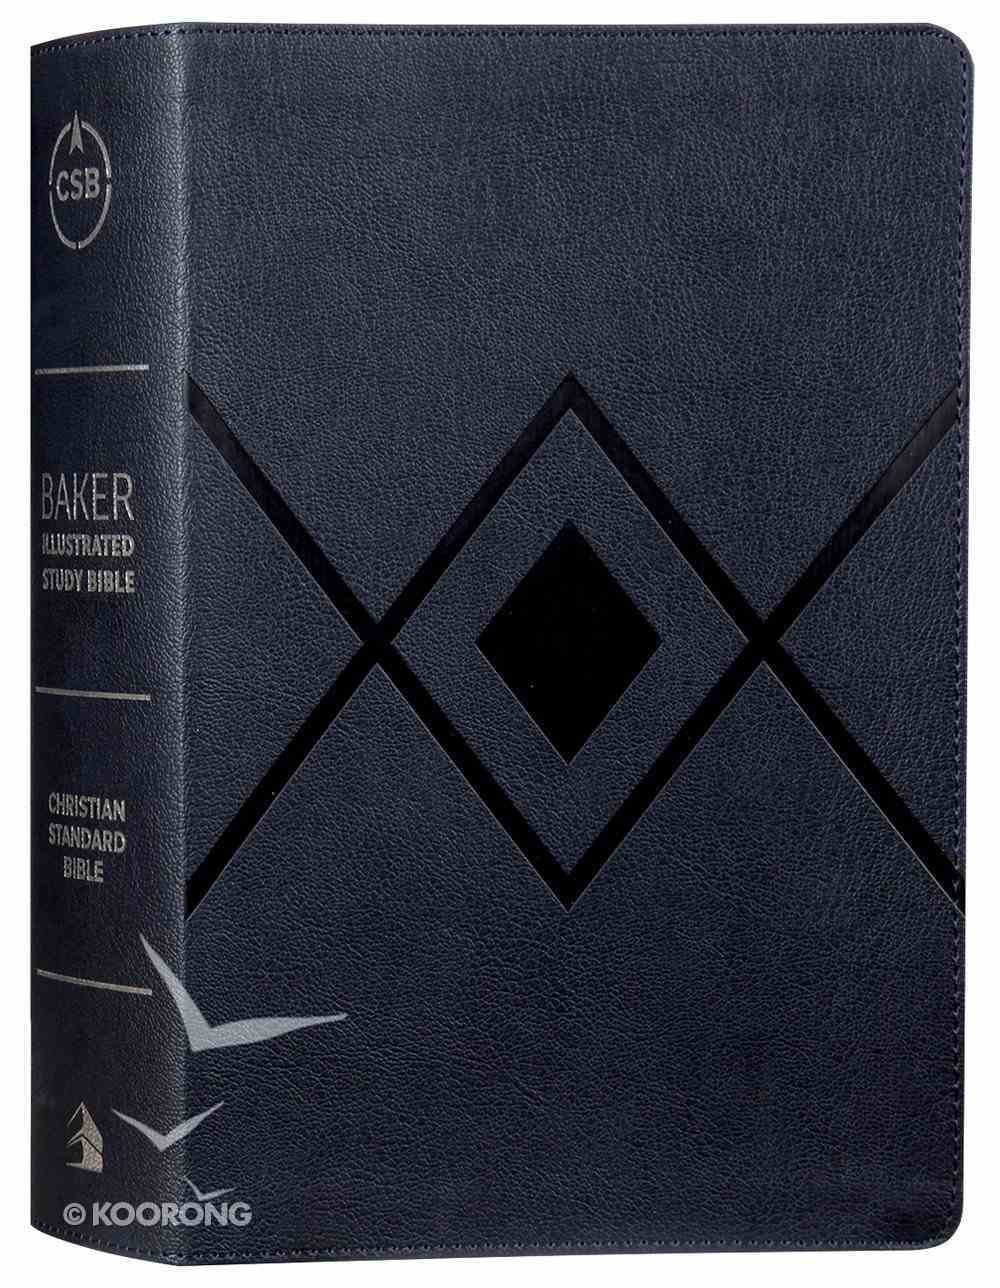 CSB Baker Illustrated Study Bible Navy Diamond Design (Red Letter Edition) Imitation Leather